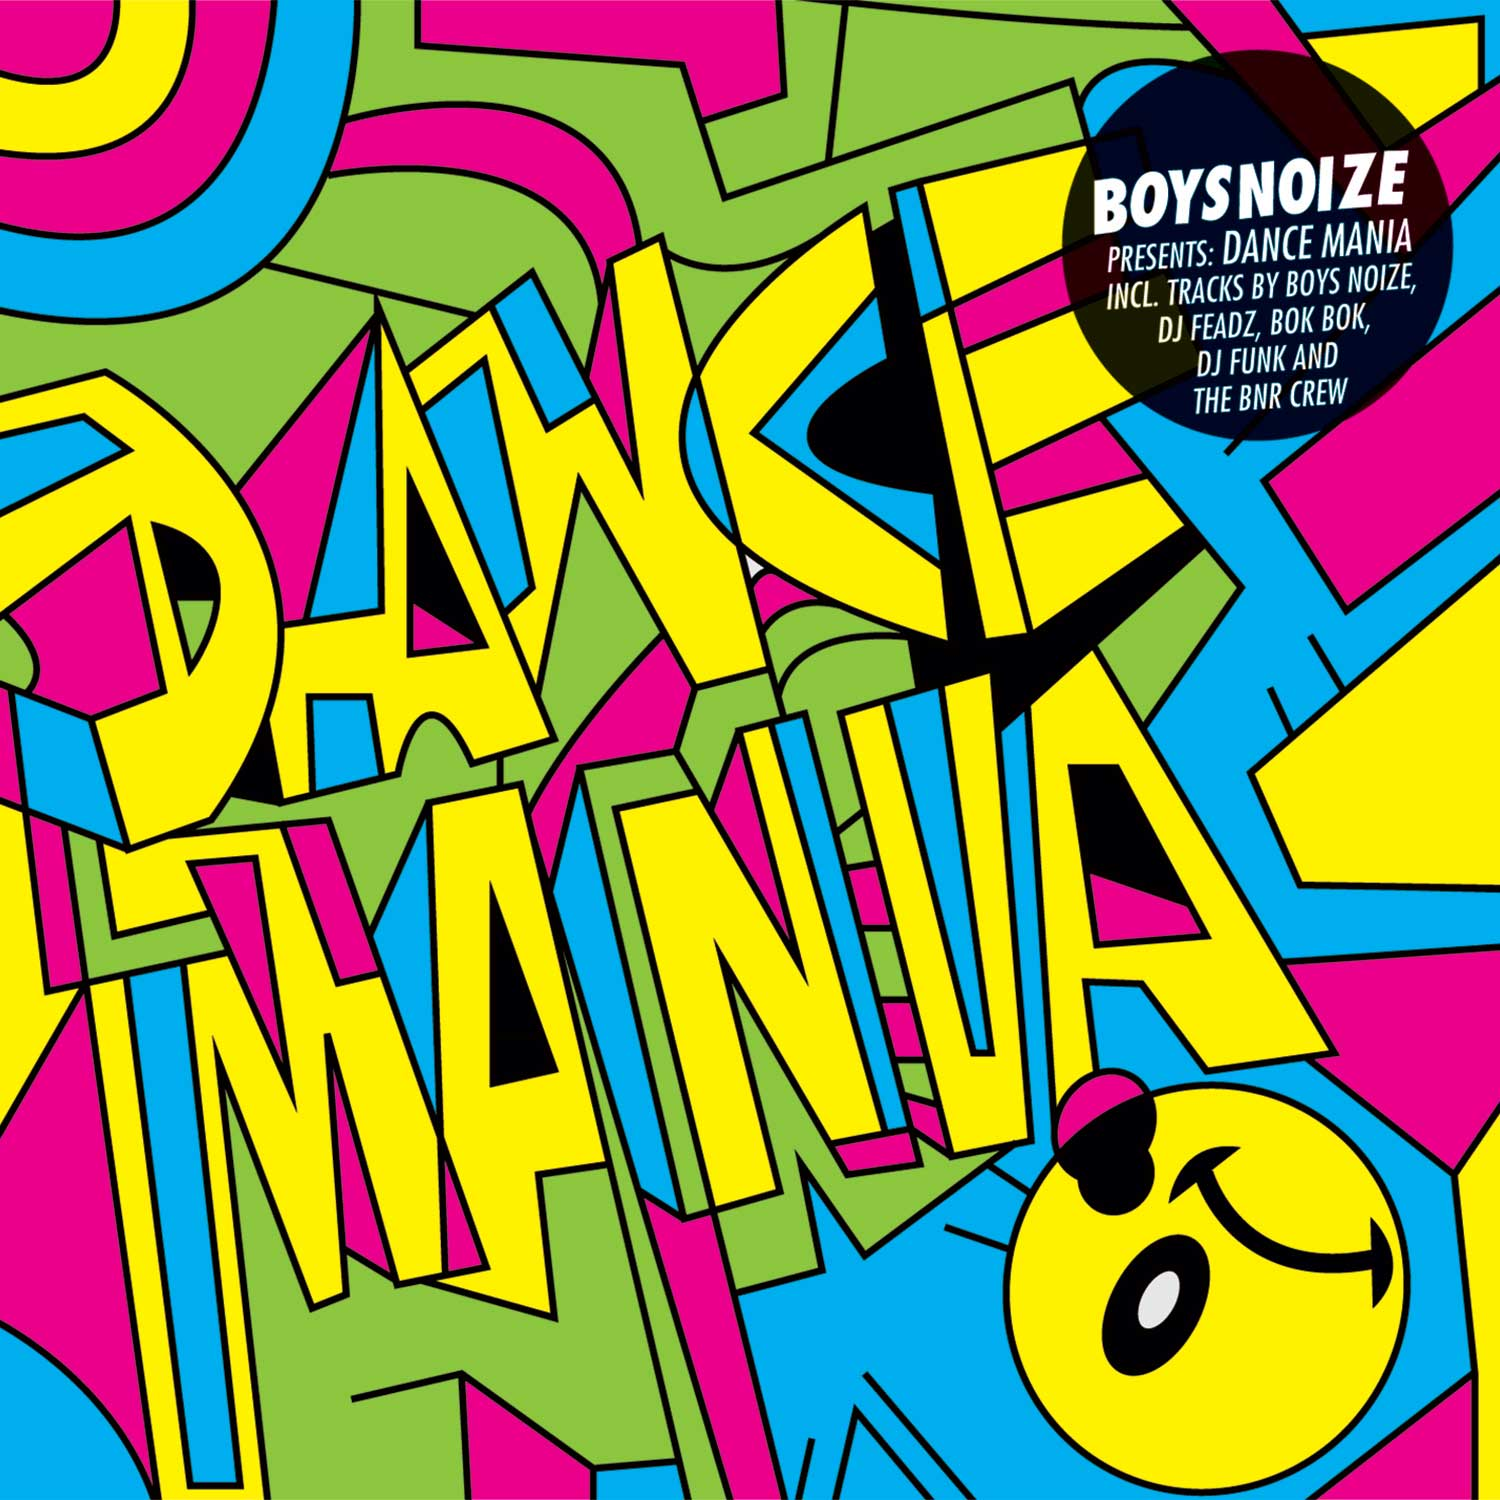 V/A – A Tribute To Dance Mania (Boysnoize)